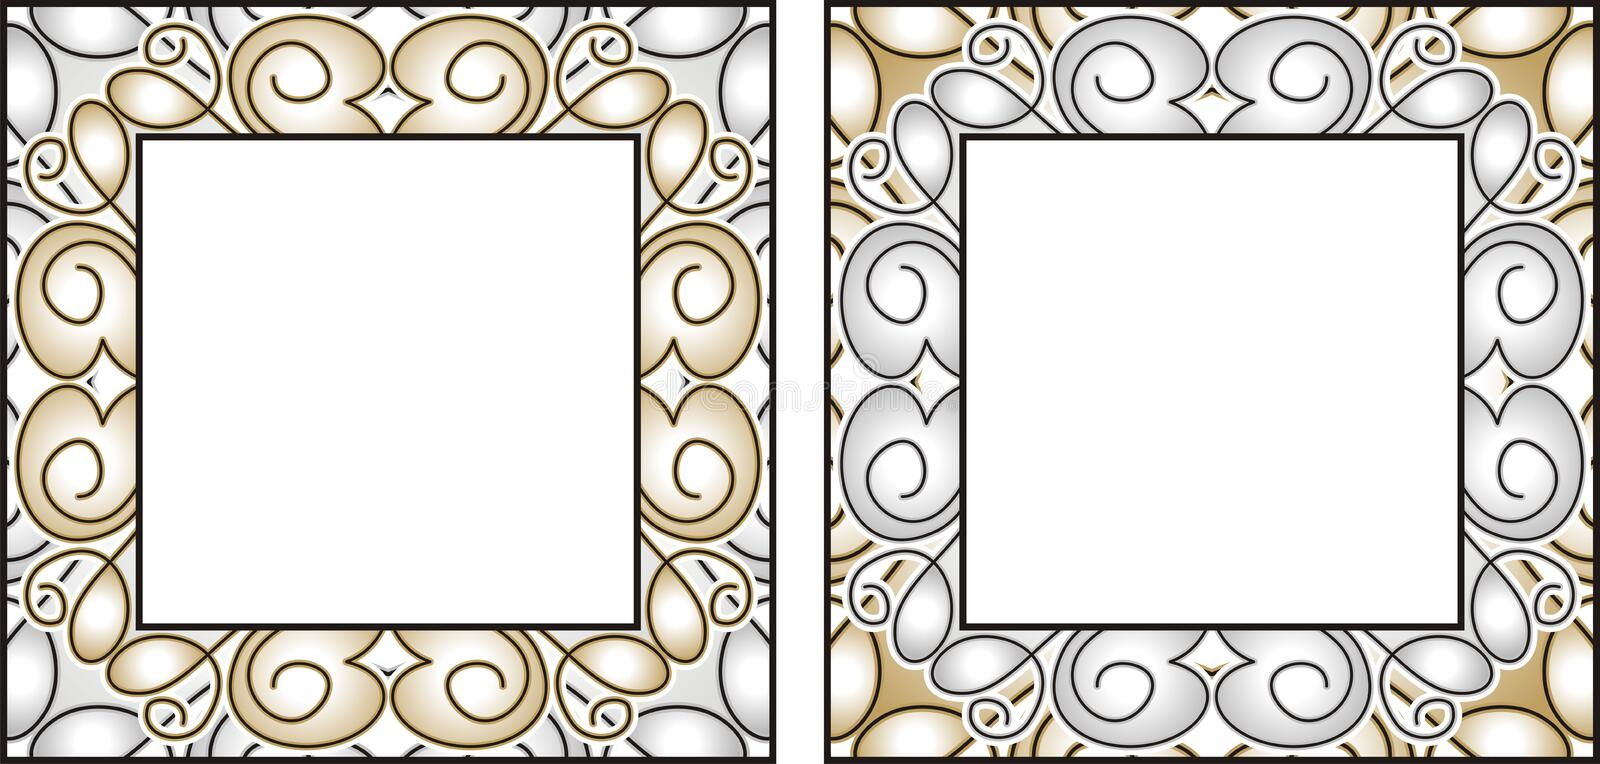 Vector Gold And Silver Frames Stock Vector - Illustration of banner ...